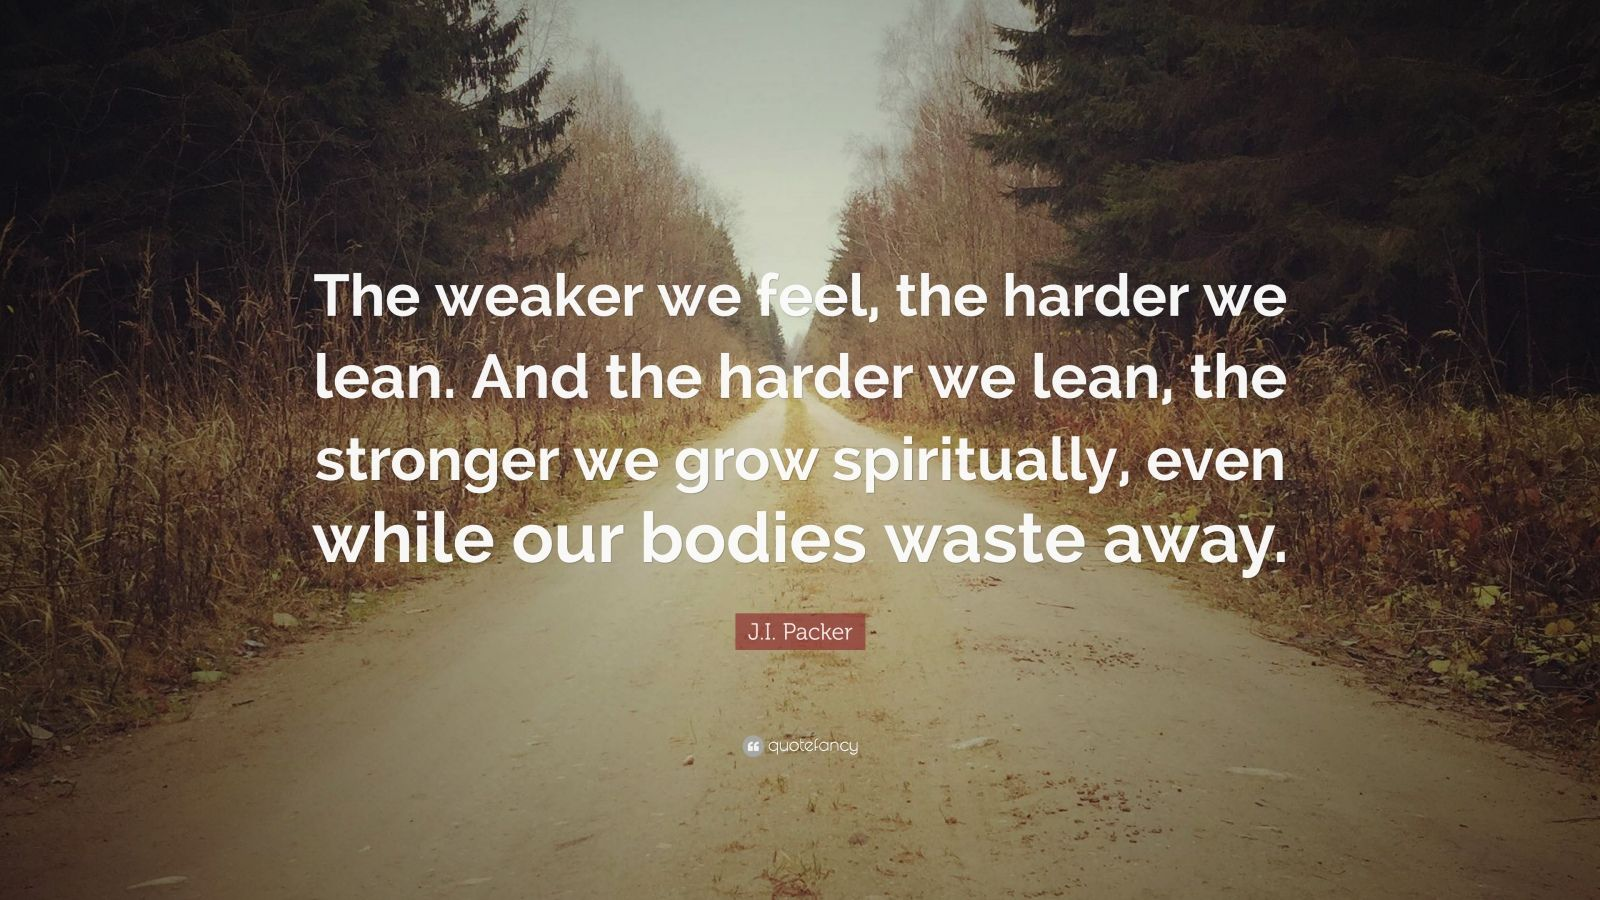 """J.I. Packer Quote: """"The weaker we feel, the harder we lean. And the harder we lean, the stronger we grow spiritually, even while our bodies waste away."""""""